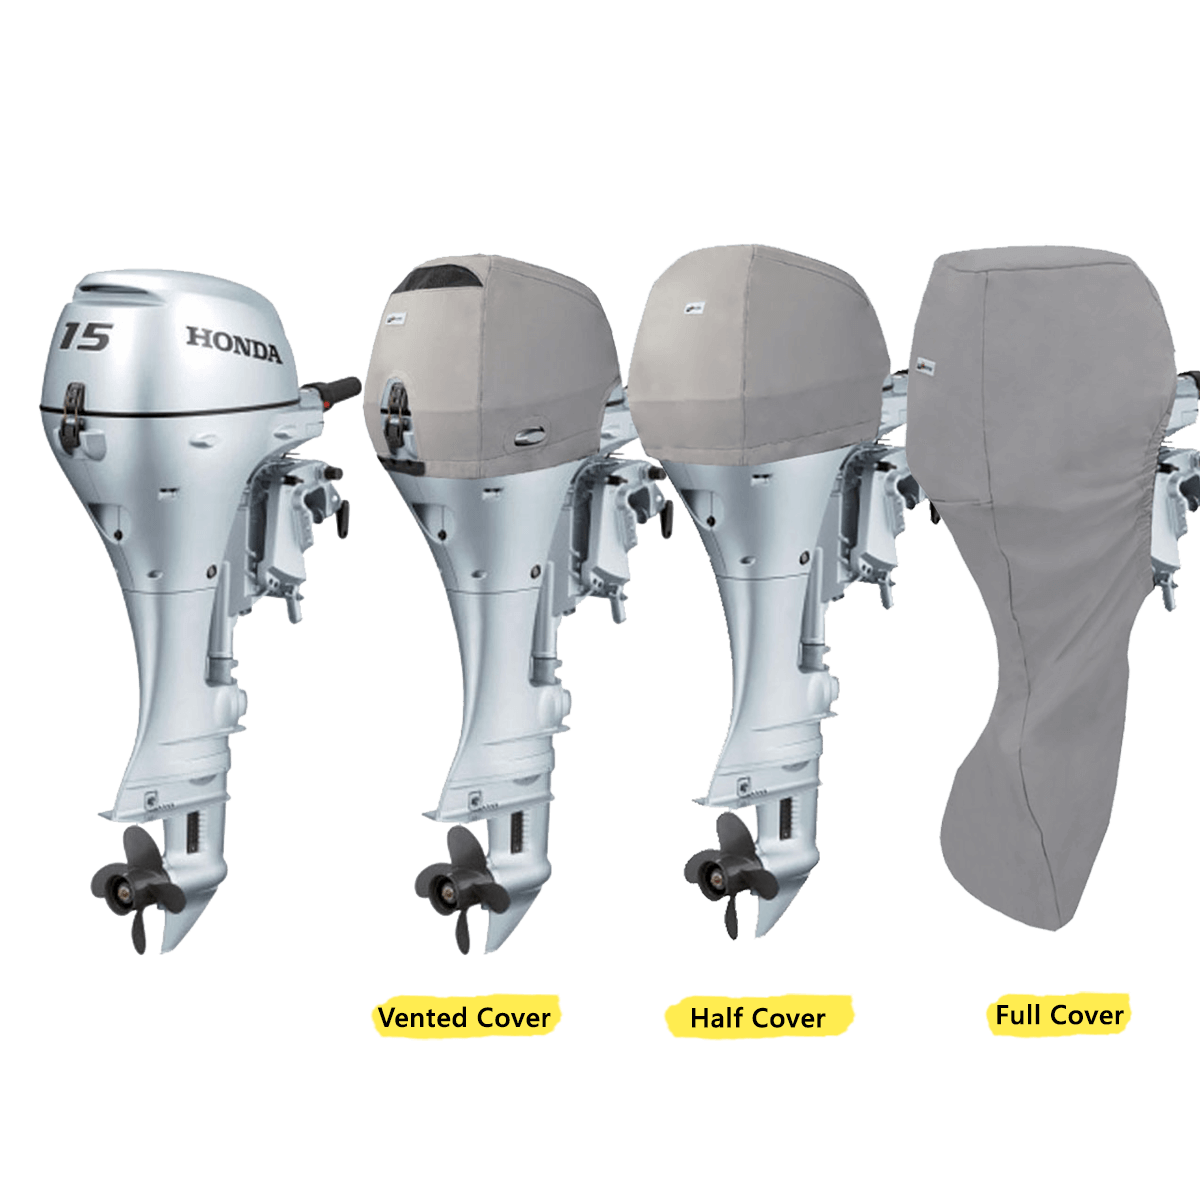 Covers for Honda Outboard Motors